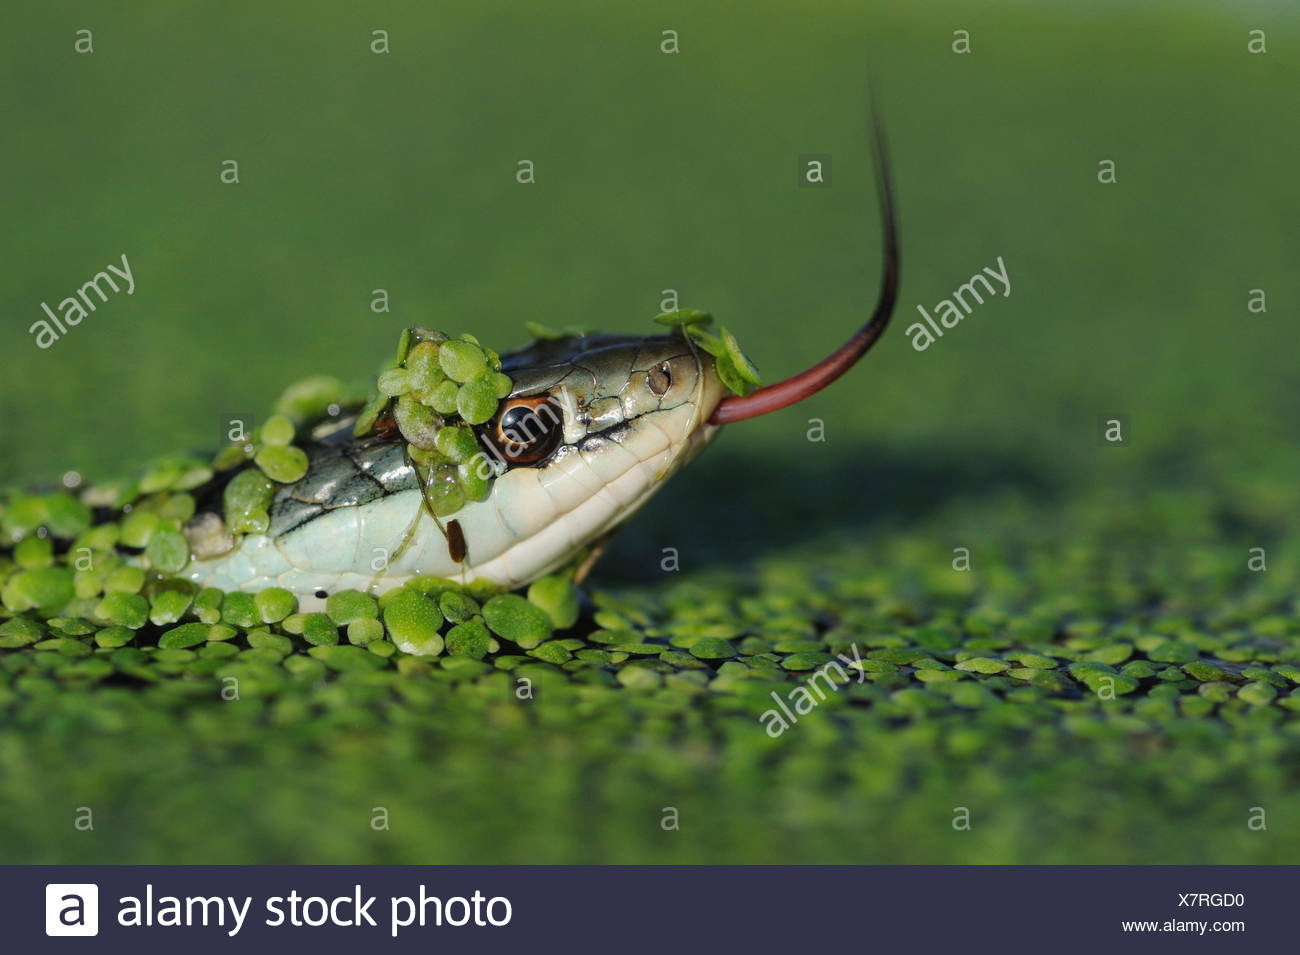 Head portrait of Gulf Coast Ribbon snake (Thamnophis proximus orarius) covered in duckweed and swimming, with tongue protruding,  Fennessey Ranch, Refugio, Corpus Christi, Coastal Bend, Texas Coast, USA - Stock Image